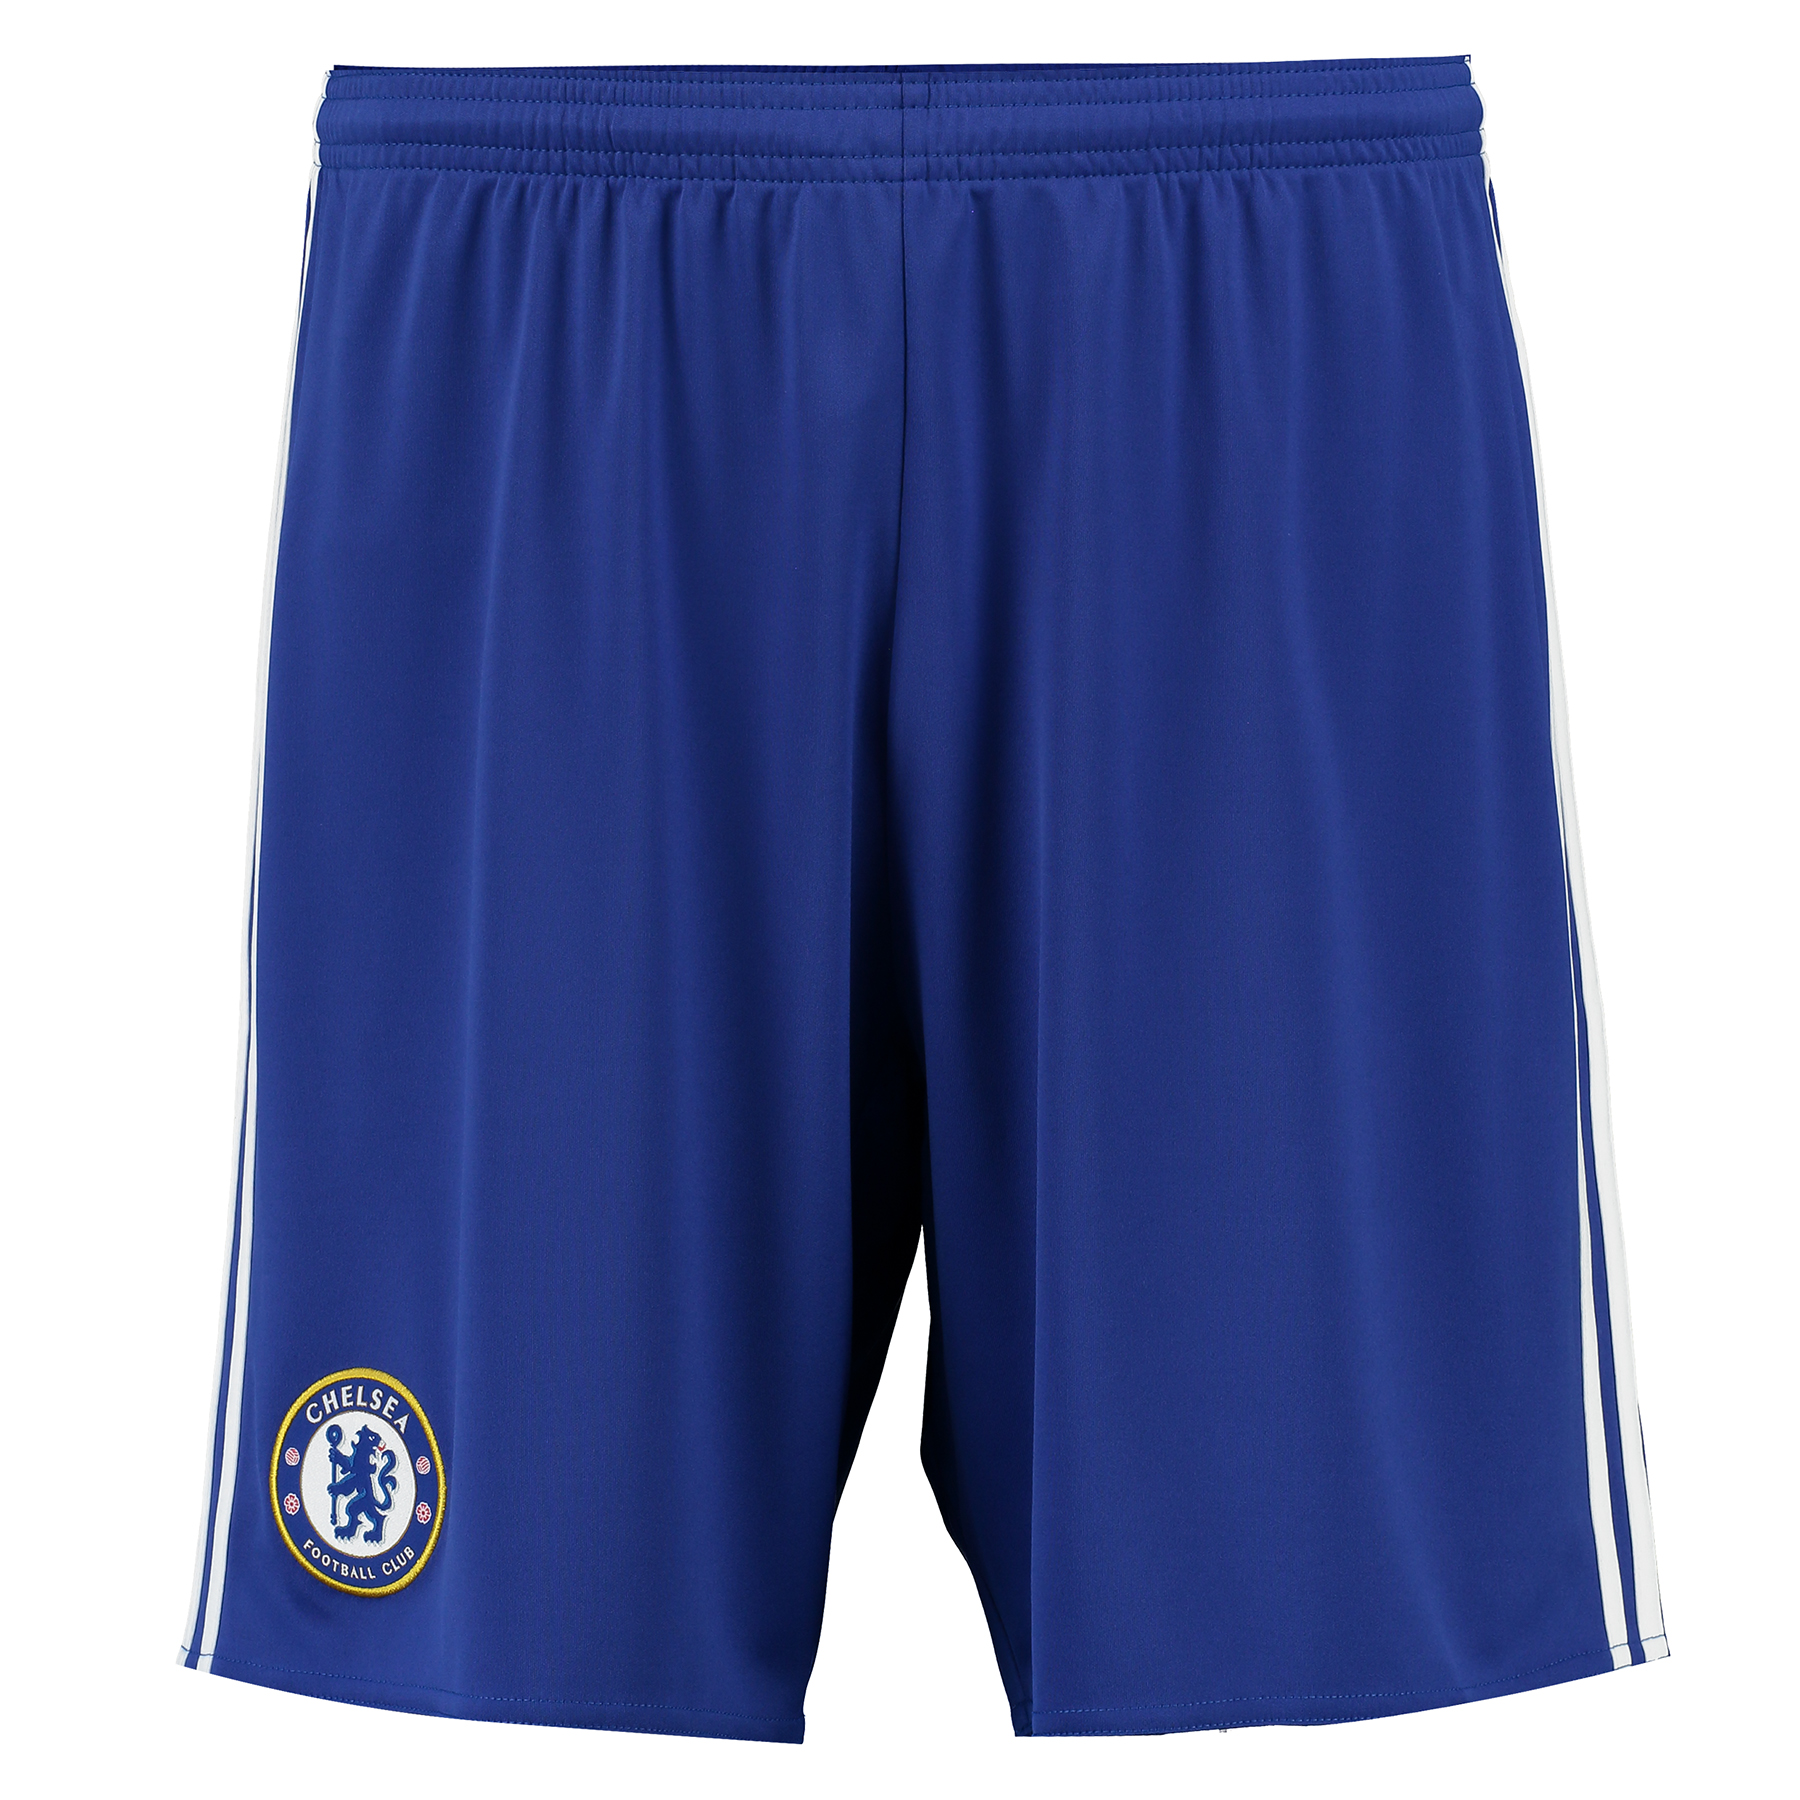 Chelsea Home Shorts 2016-17   Enhance your professional matchday image with the Chelsea Home Shorts 2016-17, official kit to accompany the pride of London's newest home jersey.   With the Chelsea club crest featured in woven form, these 2016-17 Chelsea home shorts reap the benefits of advanced Climacool® heat and moisture management technology, ensuring a cool and comfortable experience for Blues fans seeking to replicate their Stamford Bridge heroes.   Benefits:   Official Chelsea 2016-17 home shorts Climacool® heat and moisture management Woven Chelsea Football Club crest 100% recycled polyester